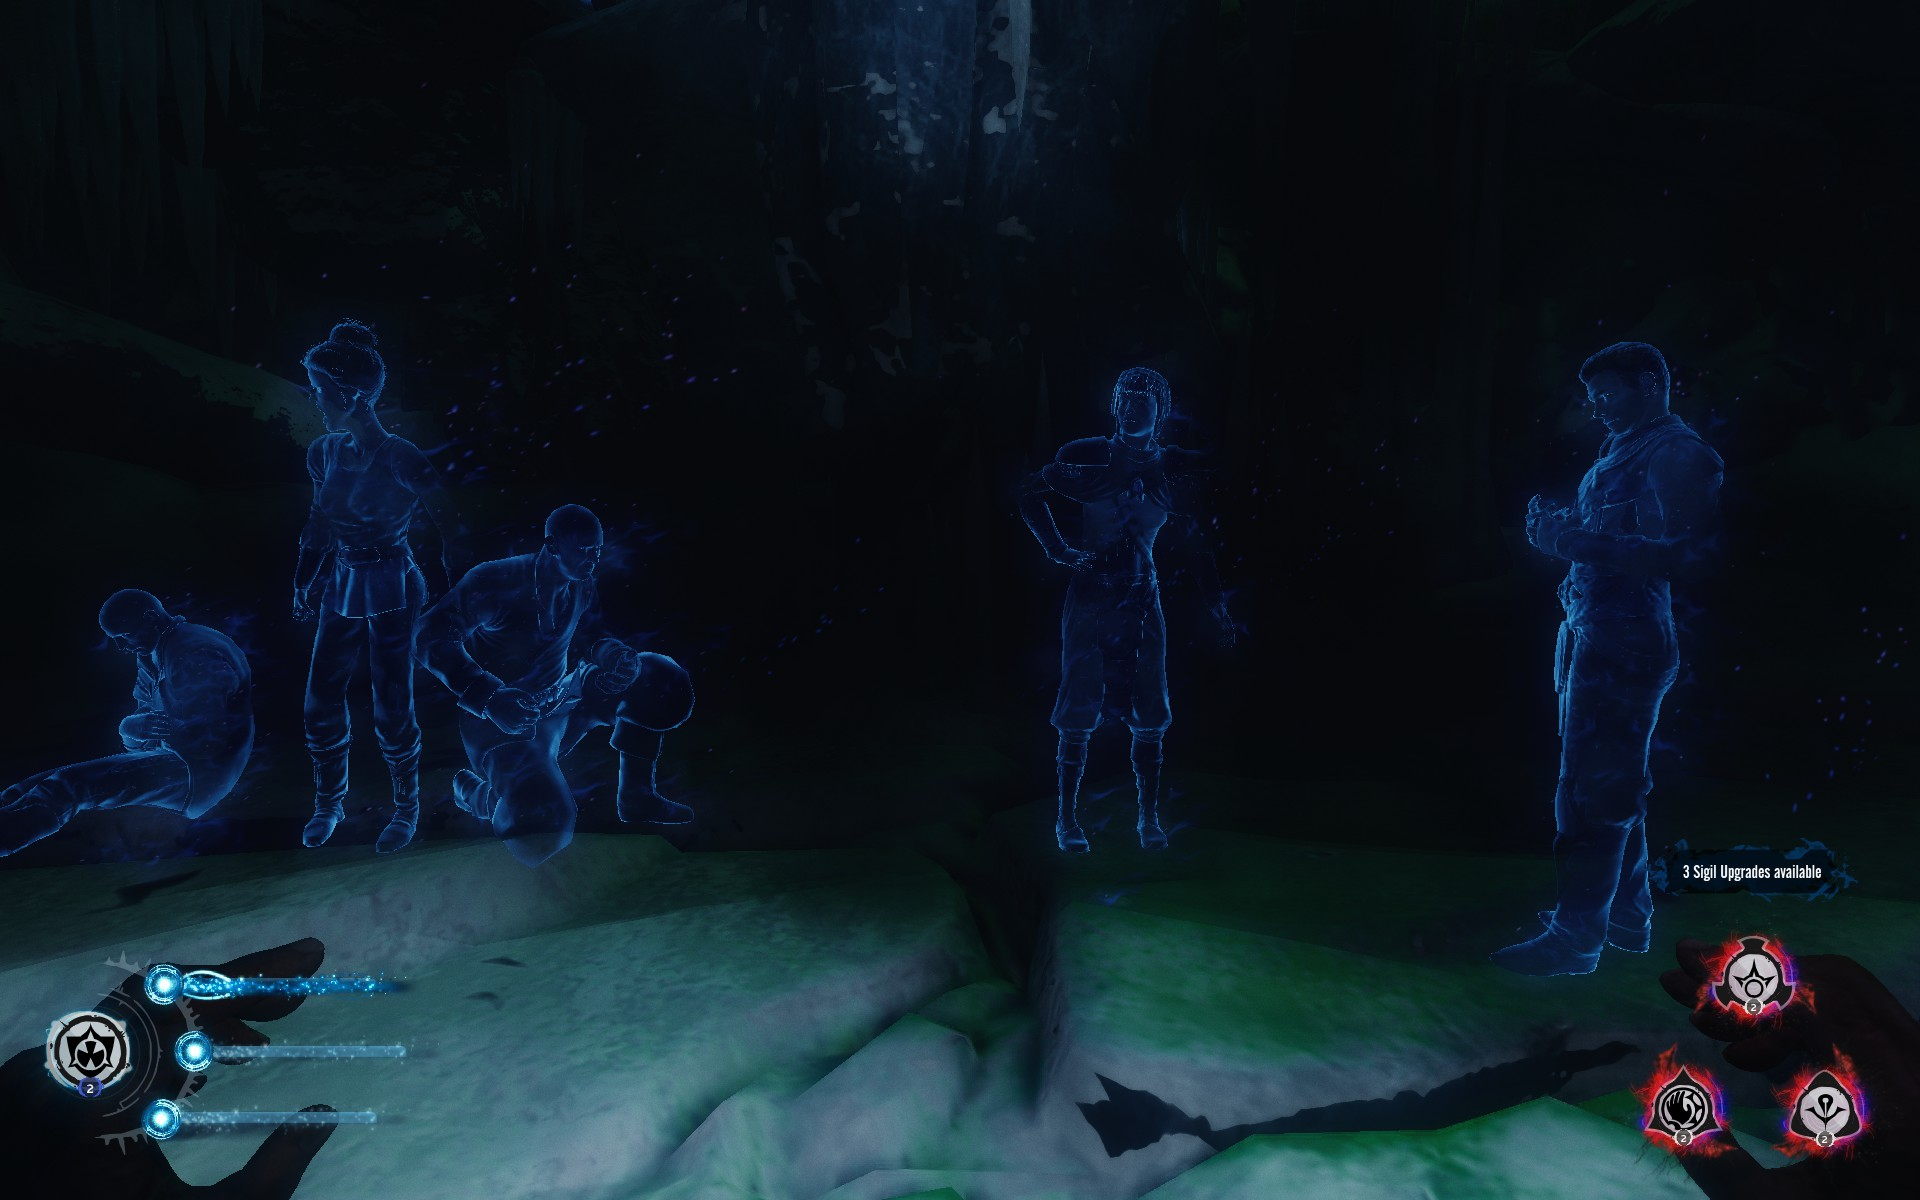 A lot of the background story is told via these ghostly images played out in front of you. If you sit through them, they even give you loot! Fantastic!